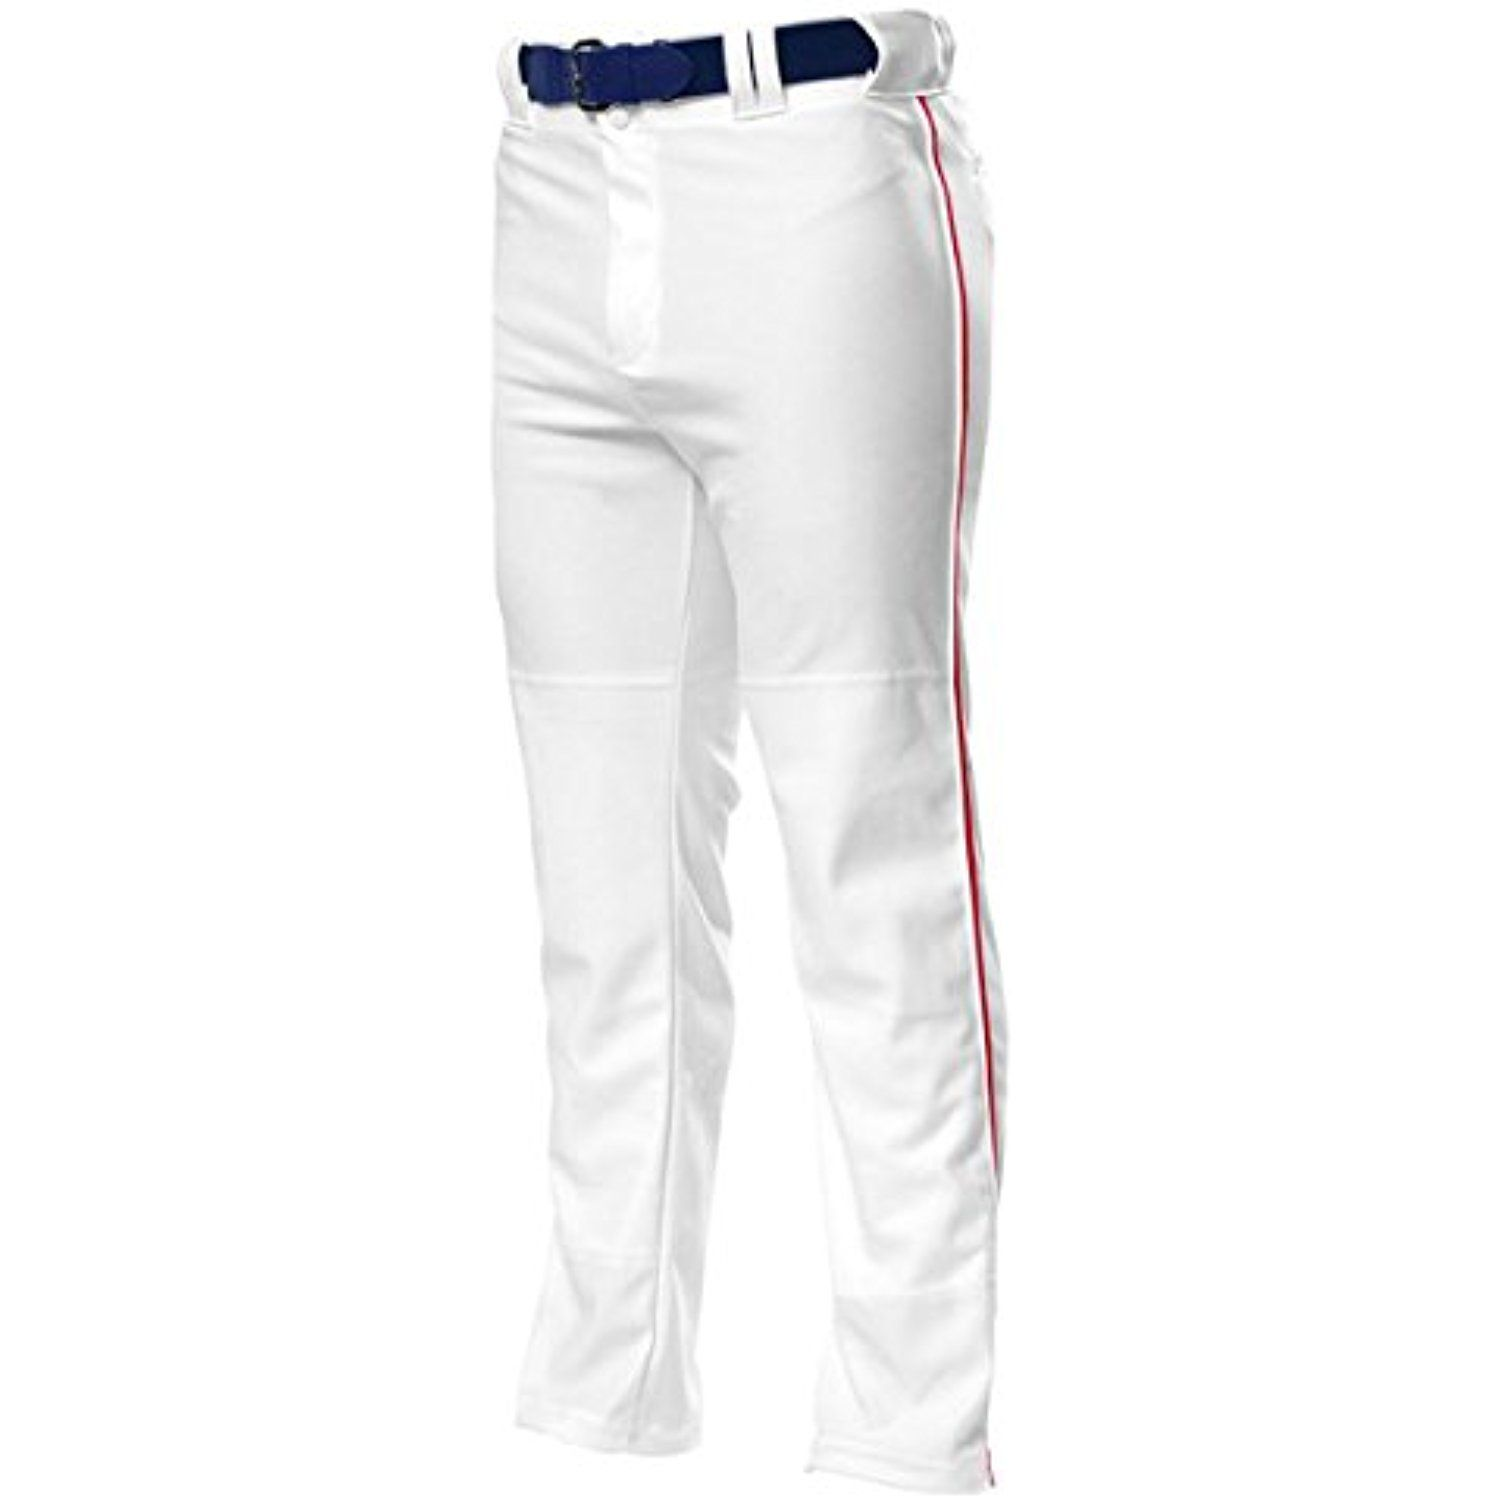 A4 Youth Pro Style Piped Baggy Baseball Pants Read More At The Image Link This Is An Affiliate Link Pants Baseball Pants Pants Baggy